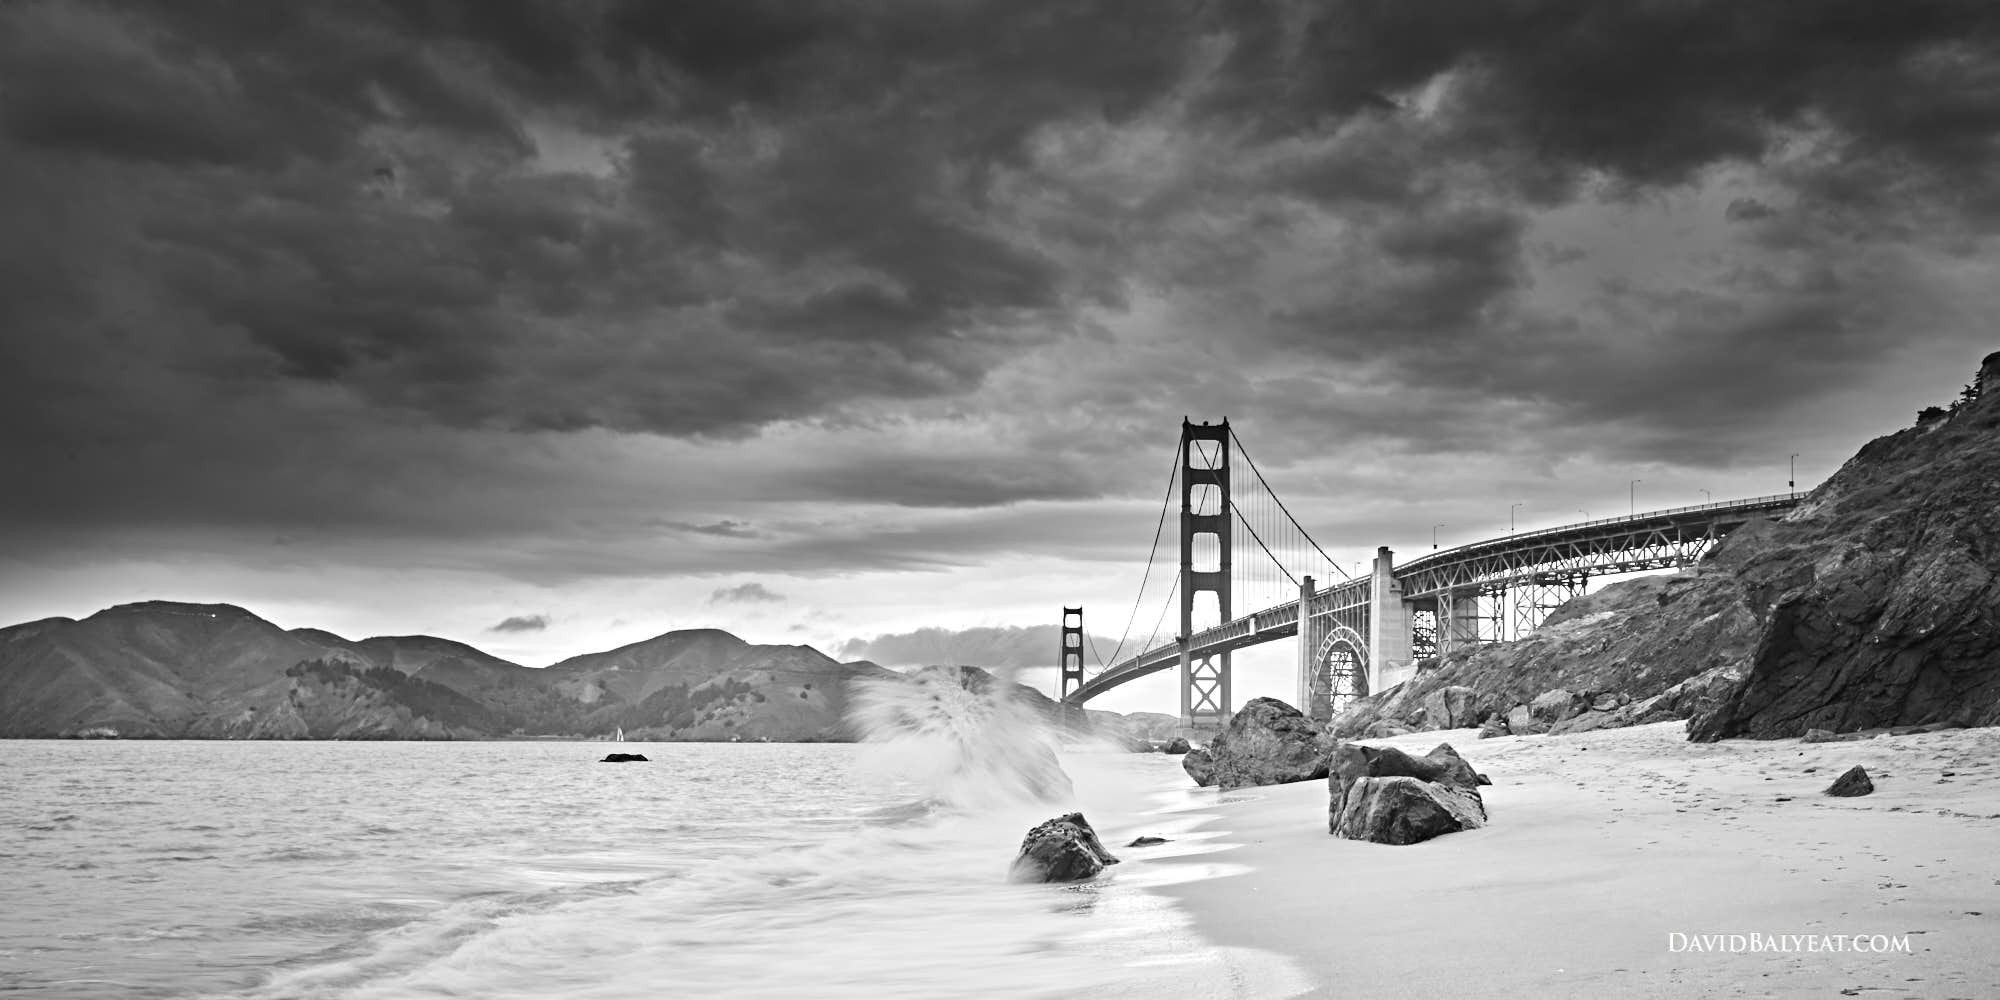 Black And White Images - Balyeat Photography pertaining to Black And White Landscape Photography 29887